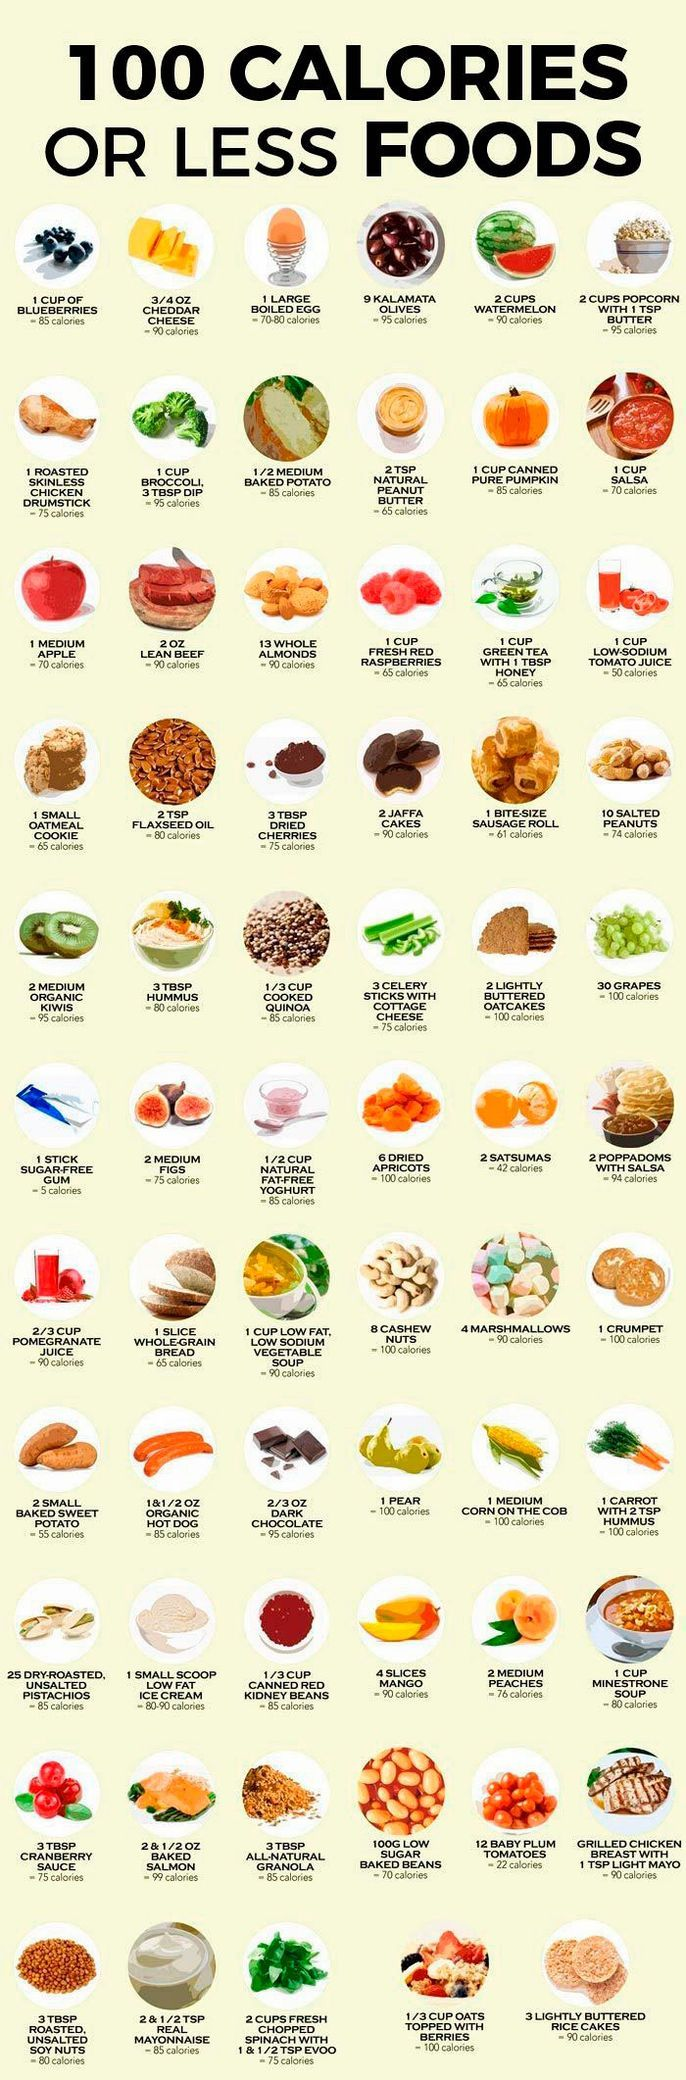 Calories Or Less Foods Chart  Health Board Food  Fitness